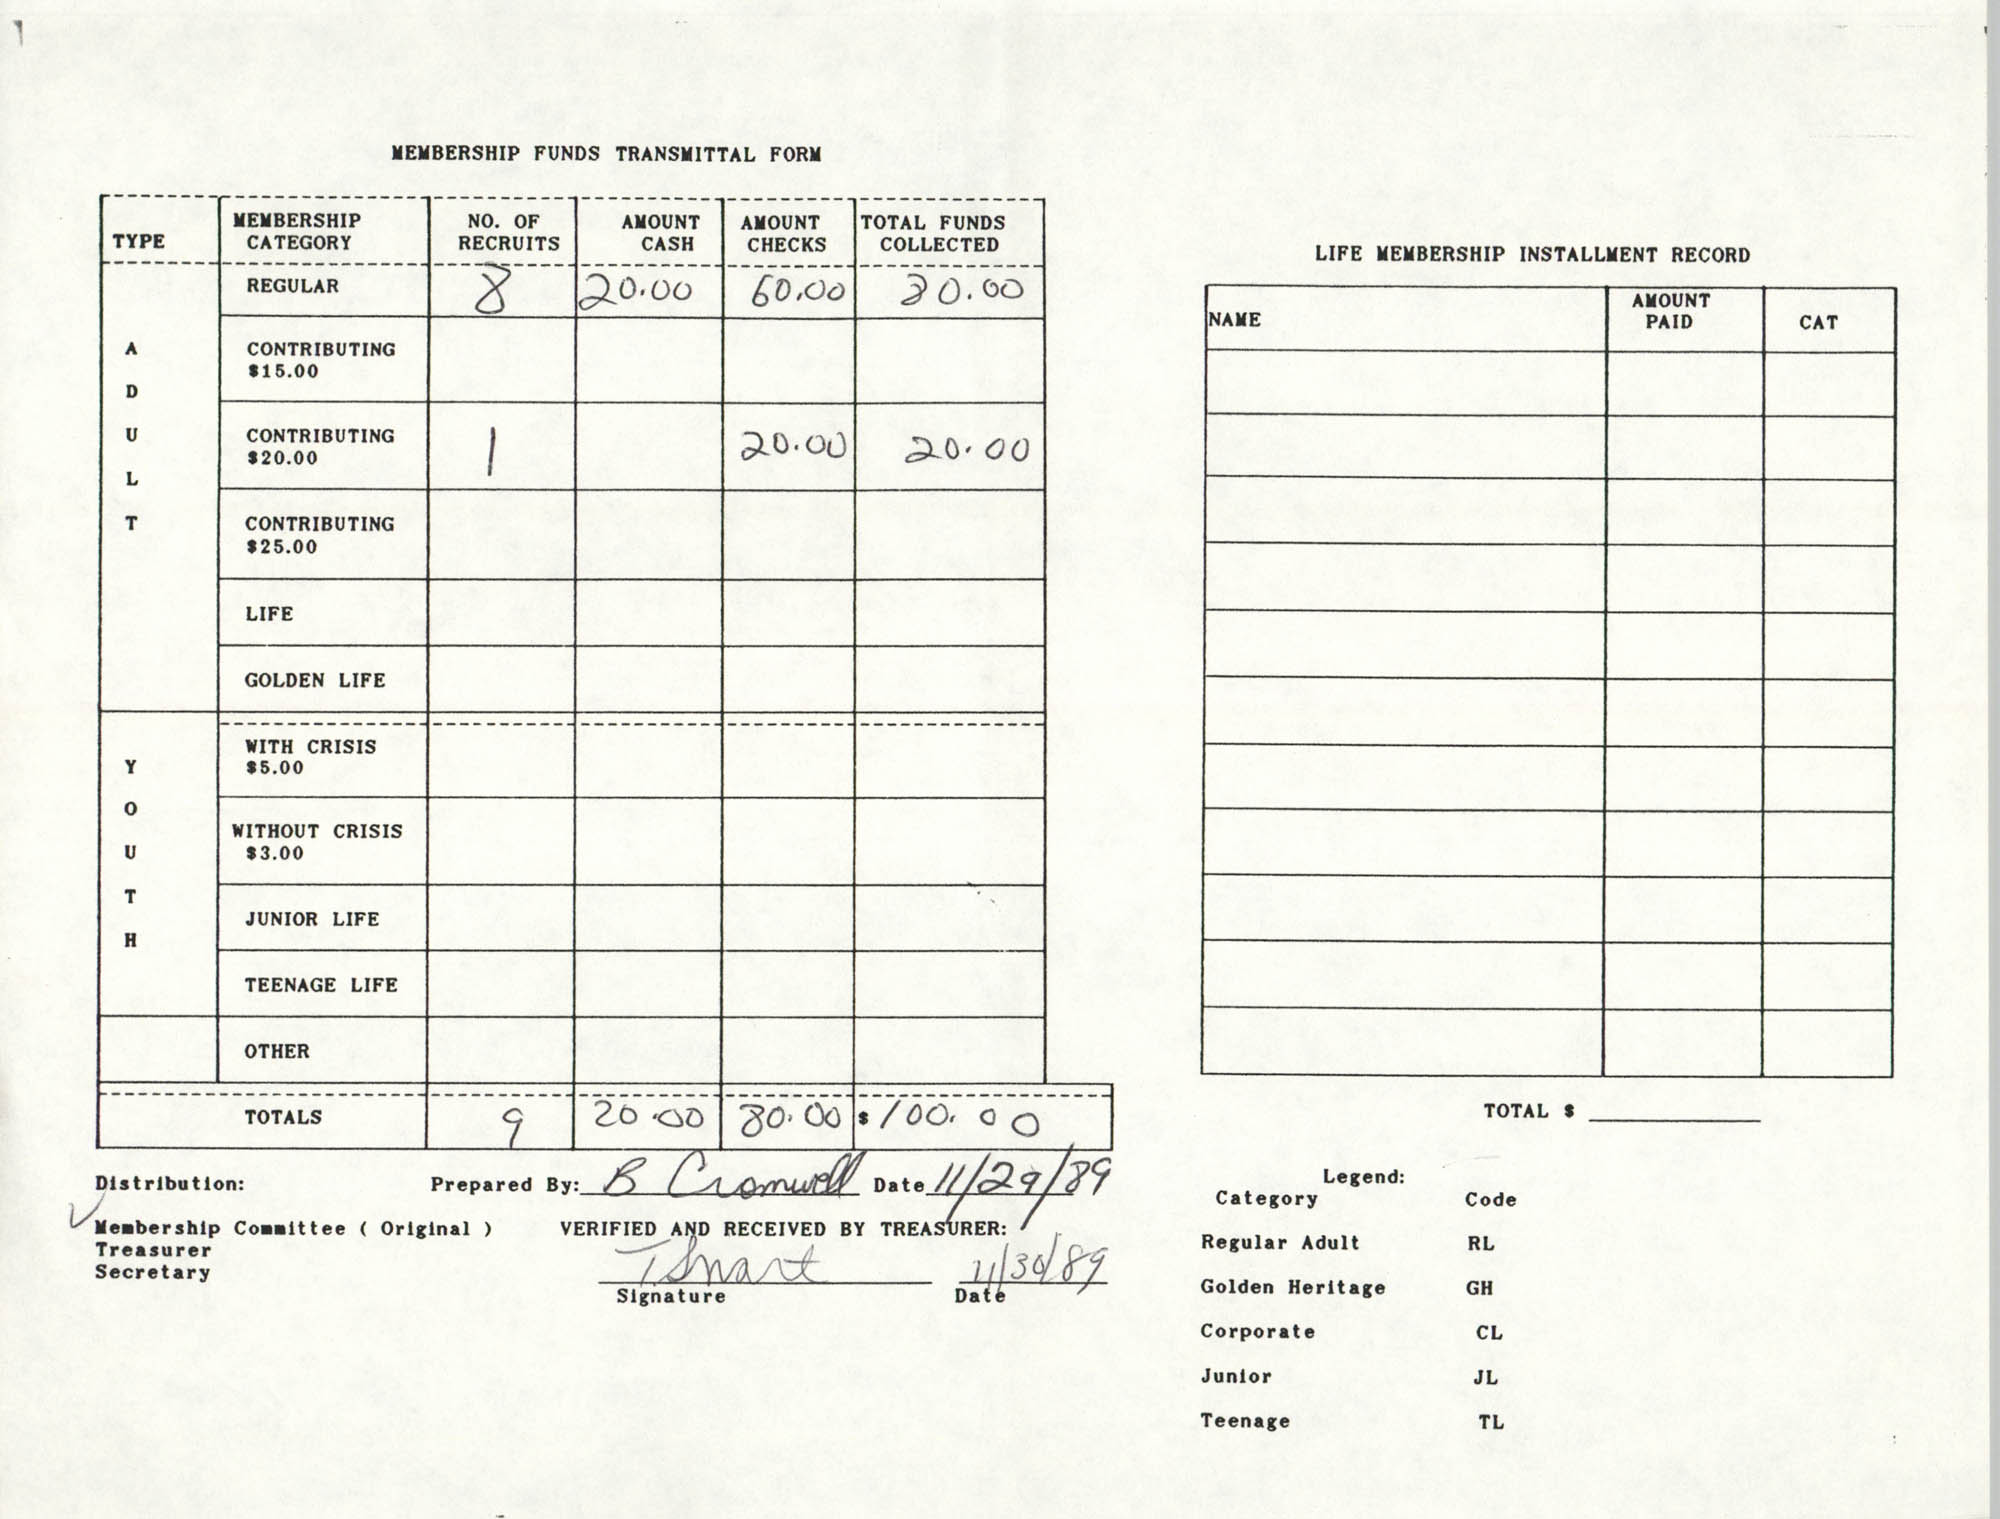 Charleston Branch of the NAACP Funds Transmittal Forms, November 1989, Page 9